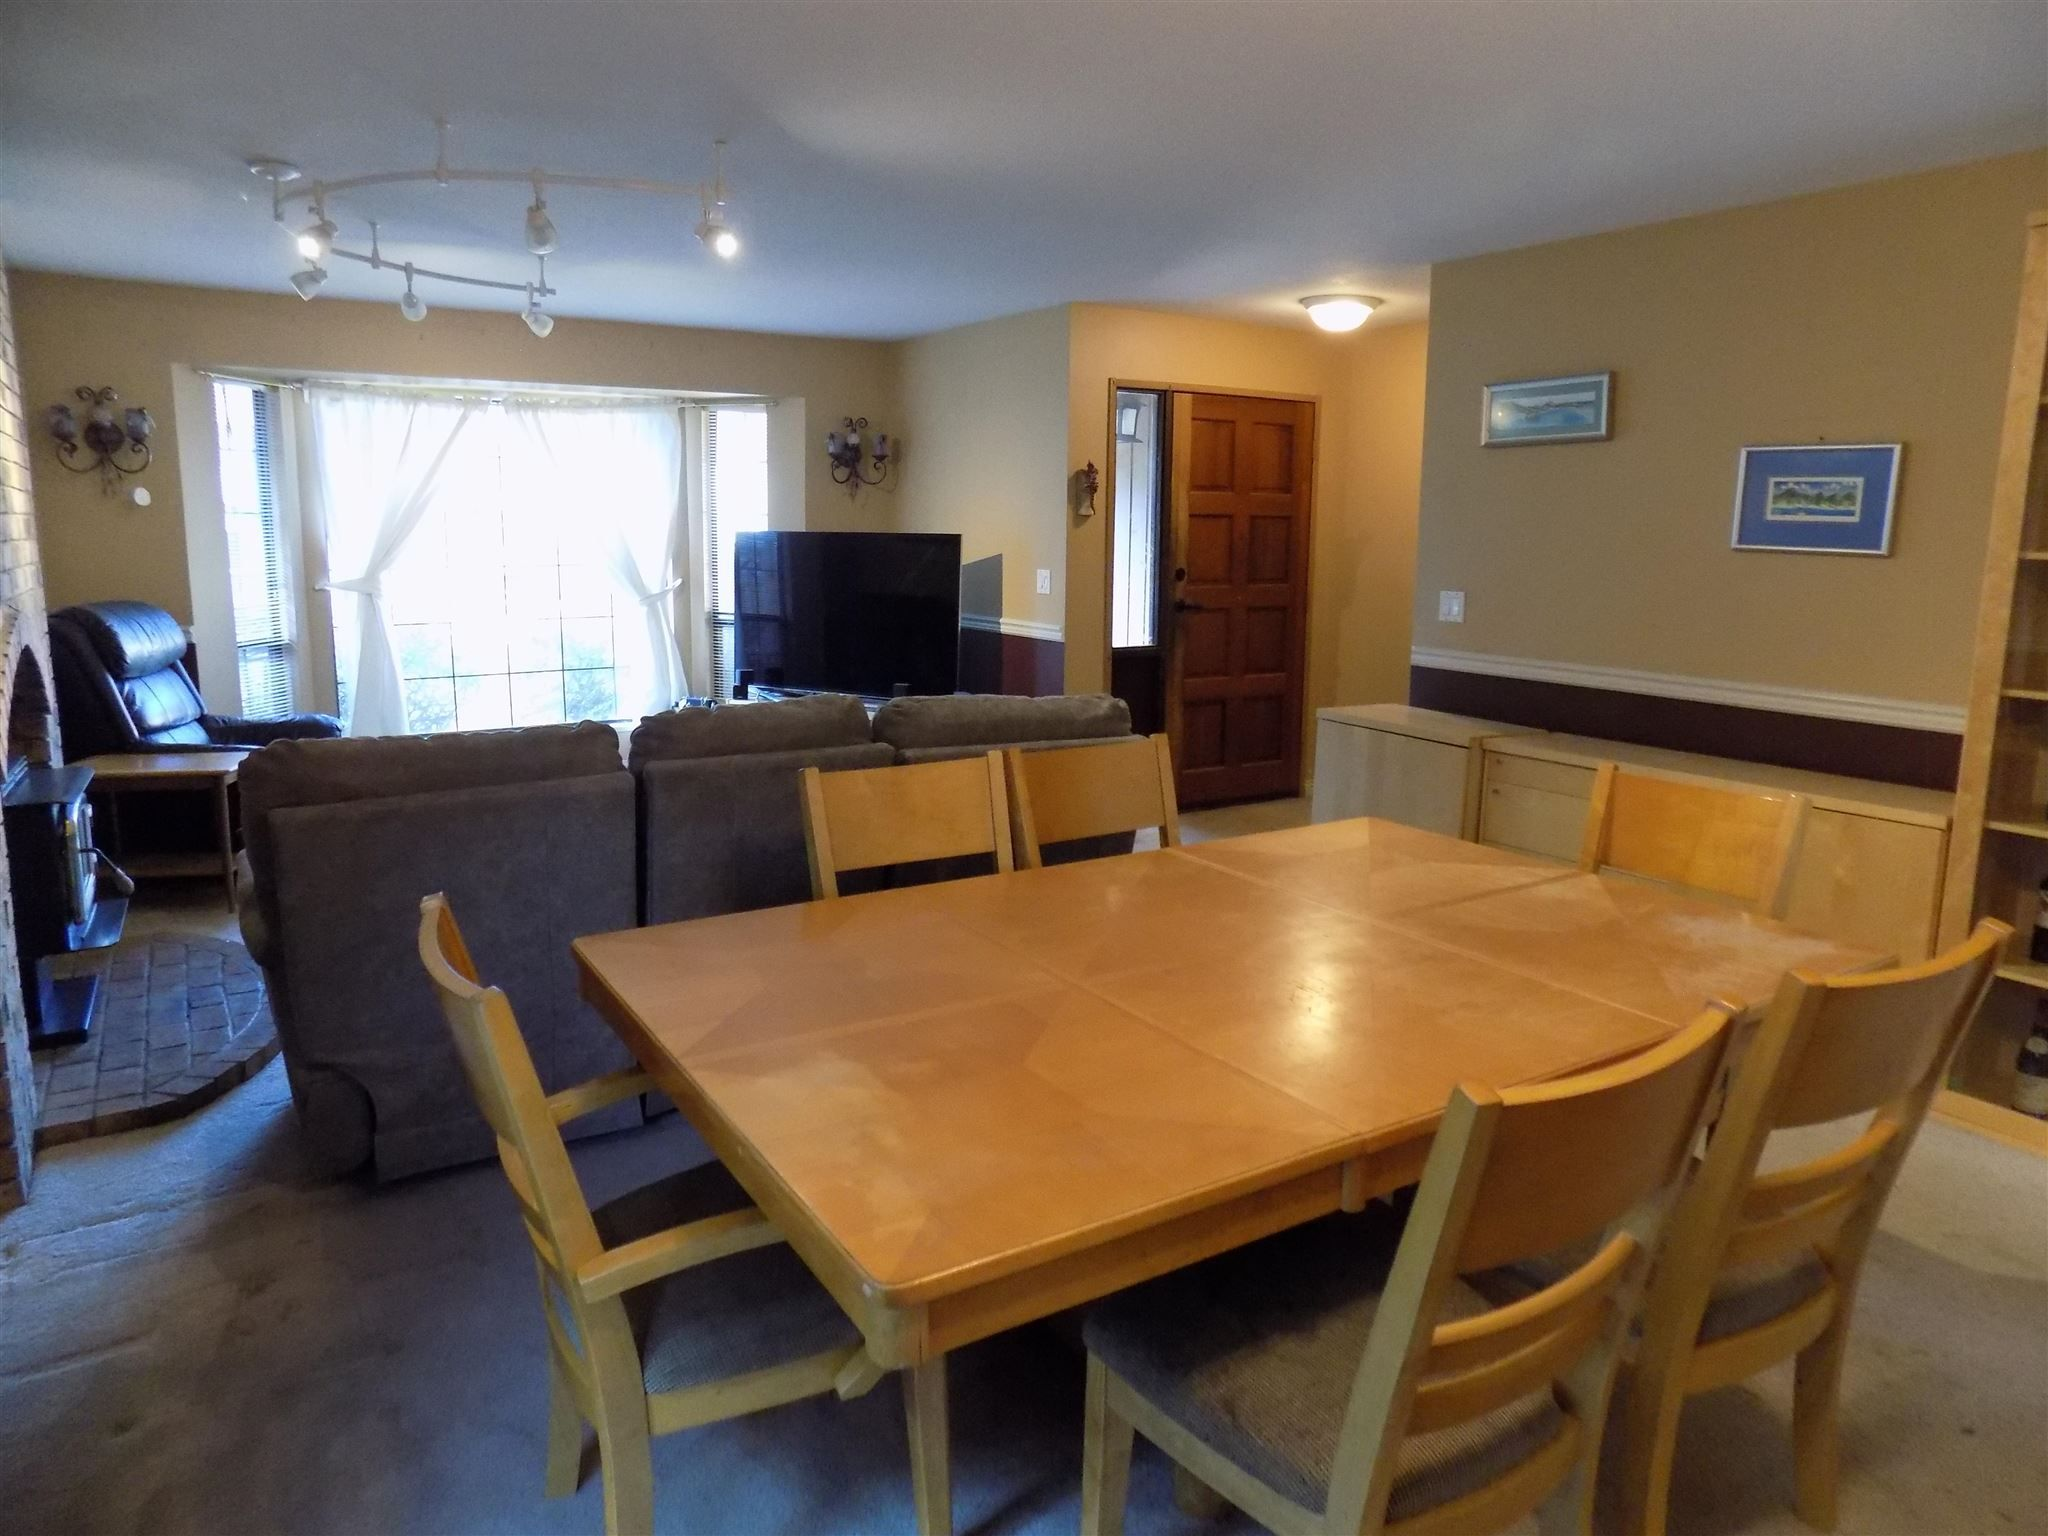 Photo 5: Photos: 32836 CAPILANO Place in Abbotsford: Central Abbotsford House for sale : MLS®# R2605248